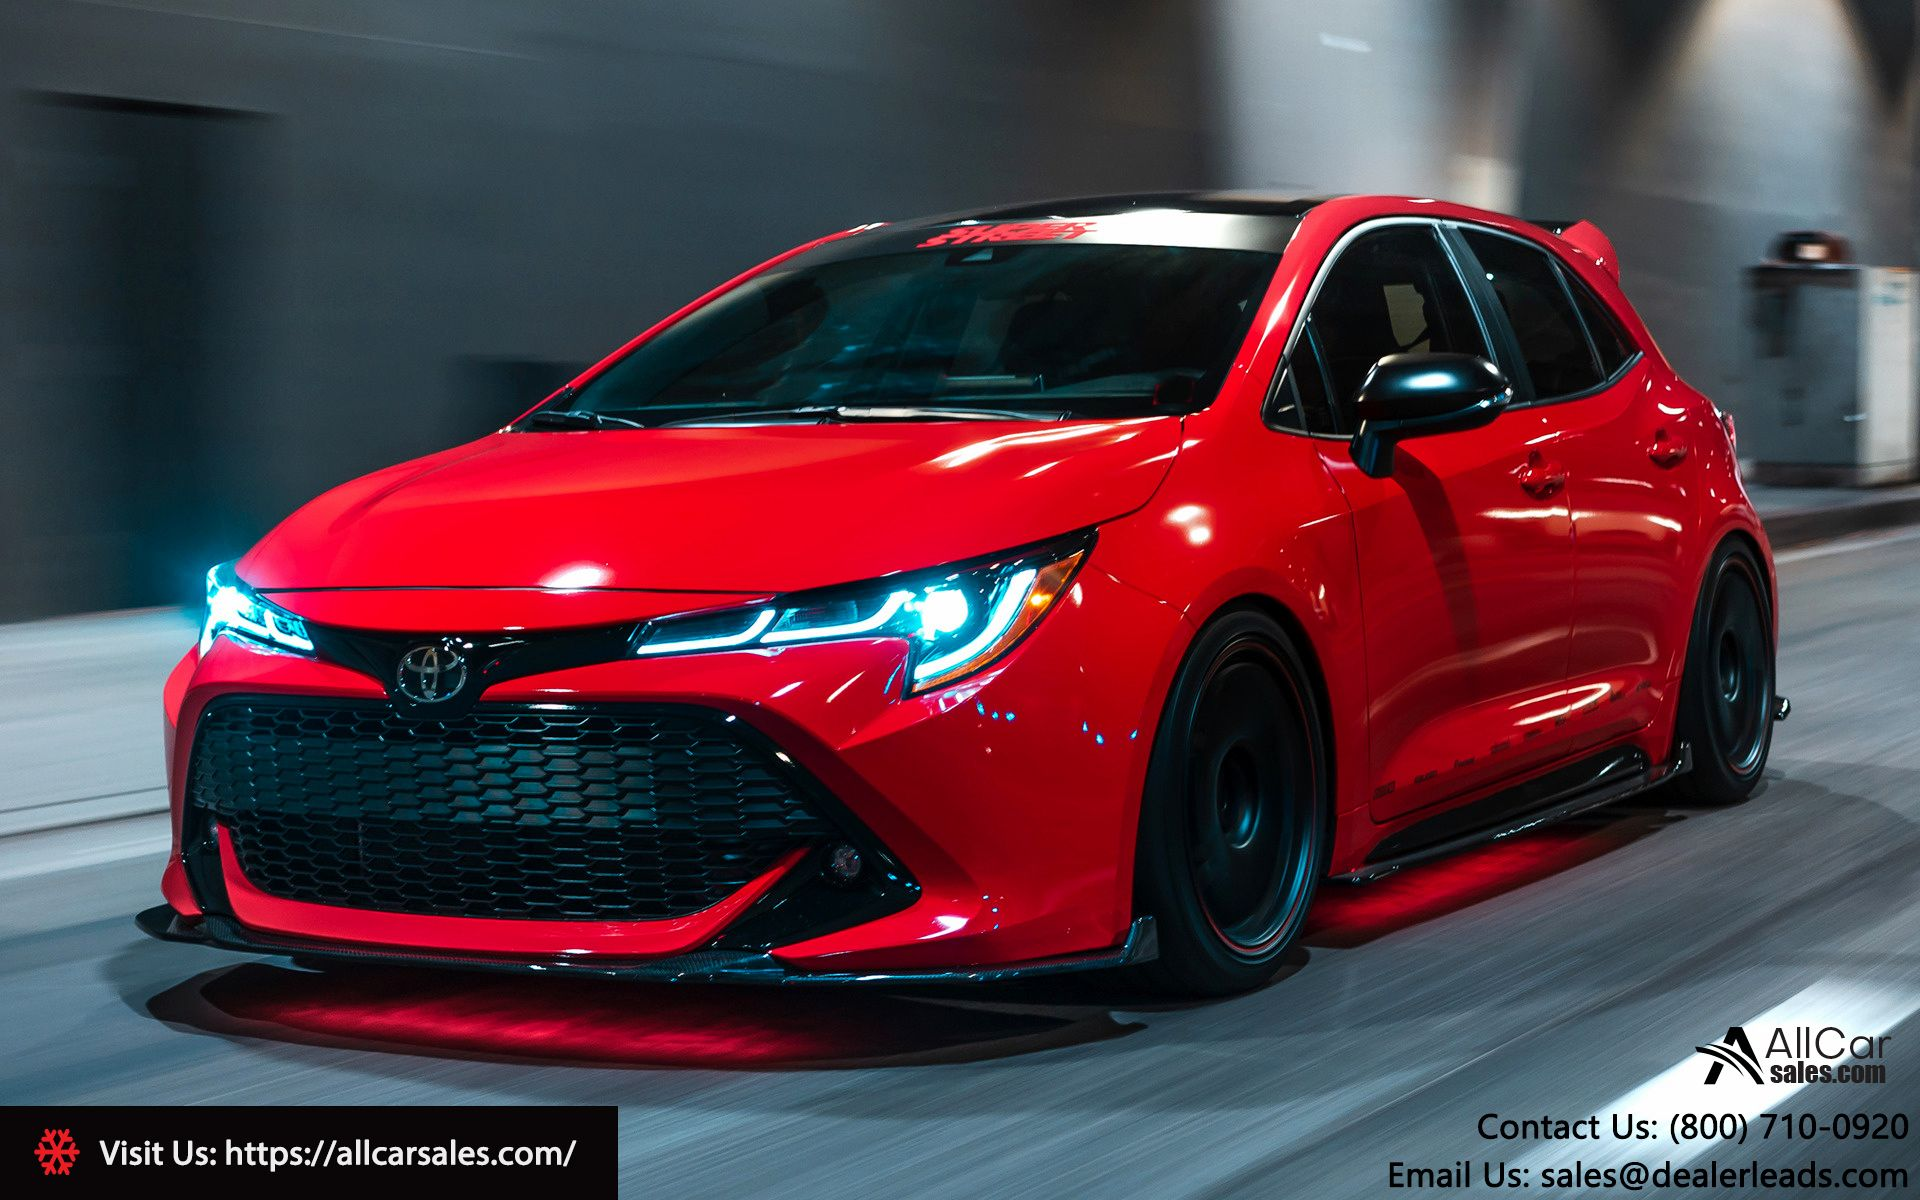 Best Selling Car Of All Time >> Toyota Corolla Is The Best Selling Car Of All Time Amongst